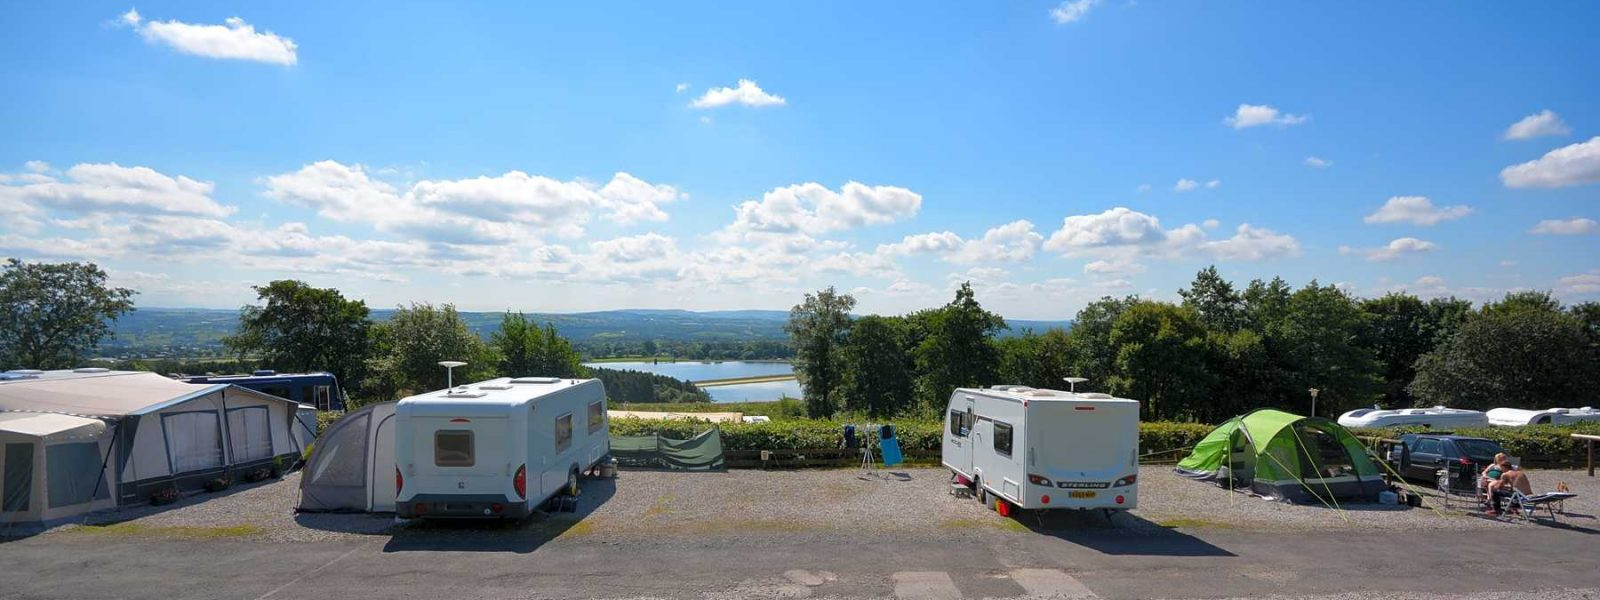 beacon-fell-view-campervan-hire